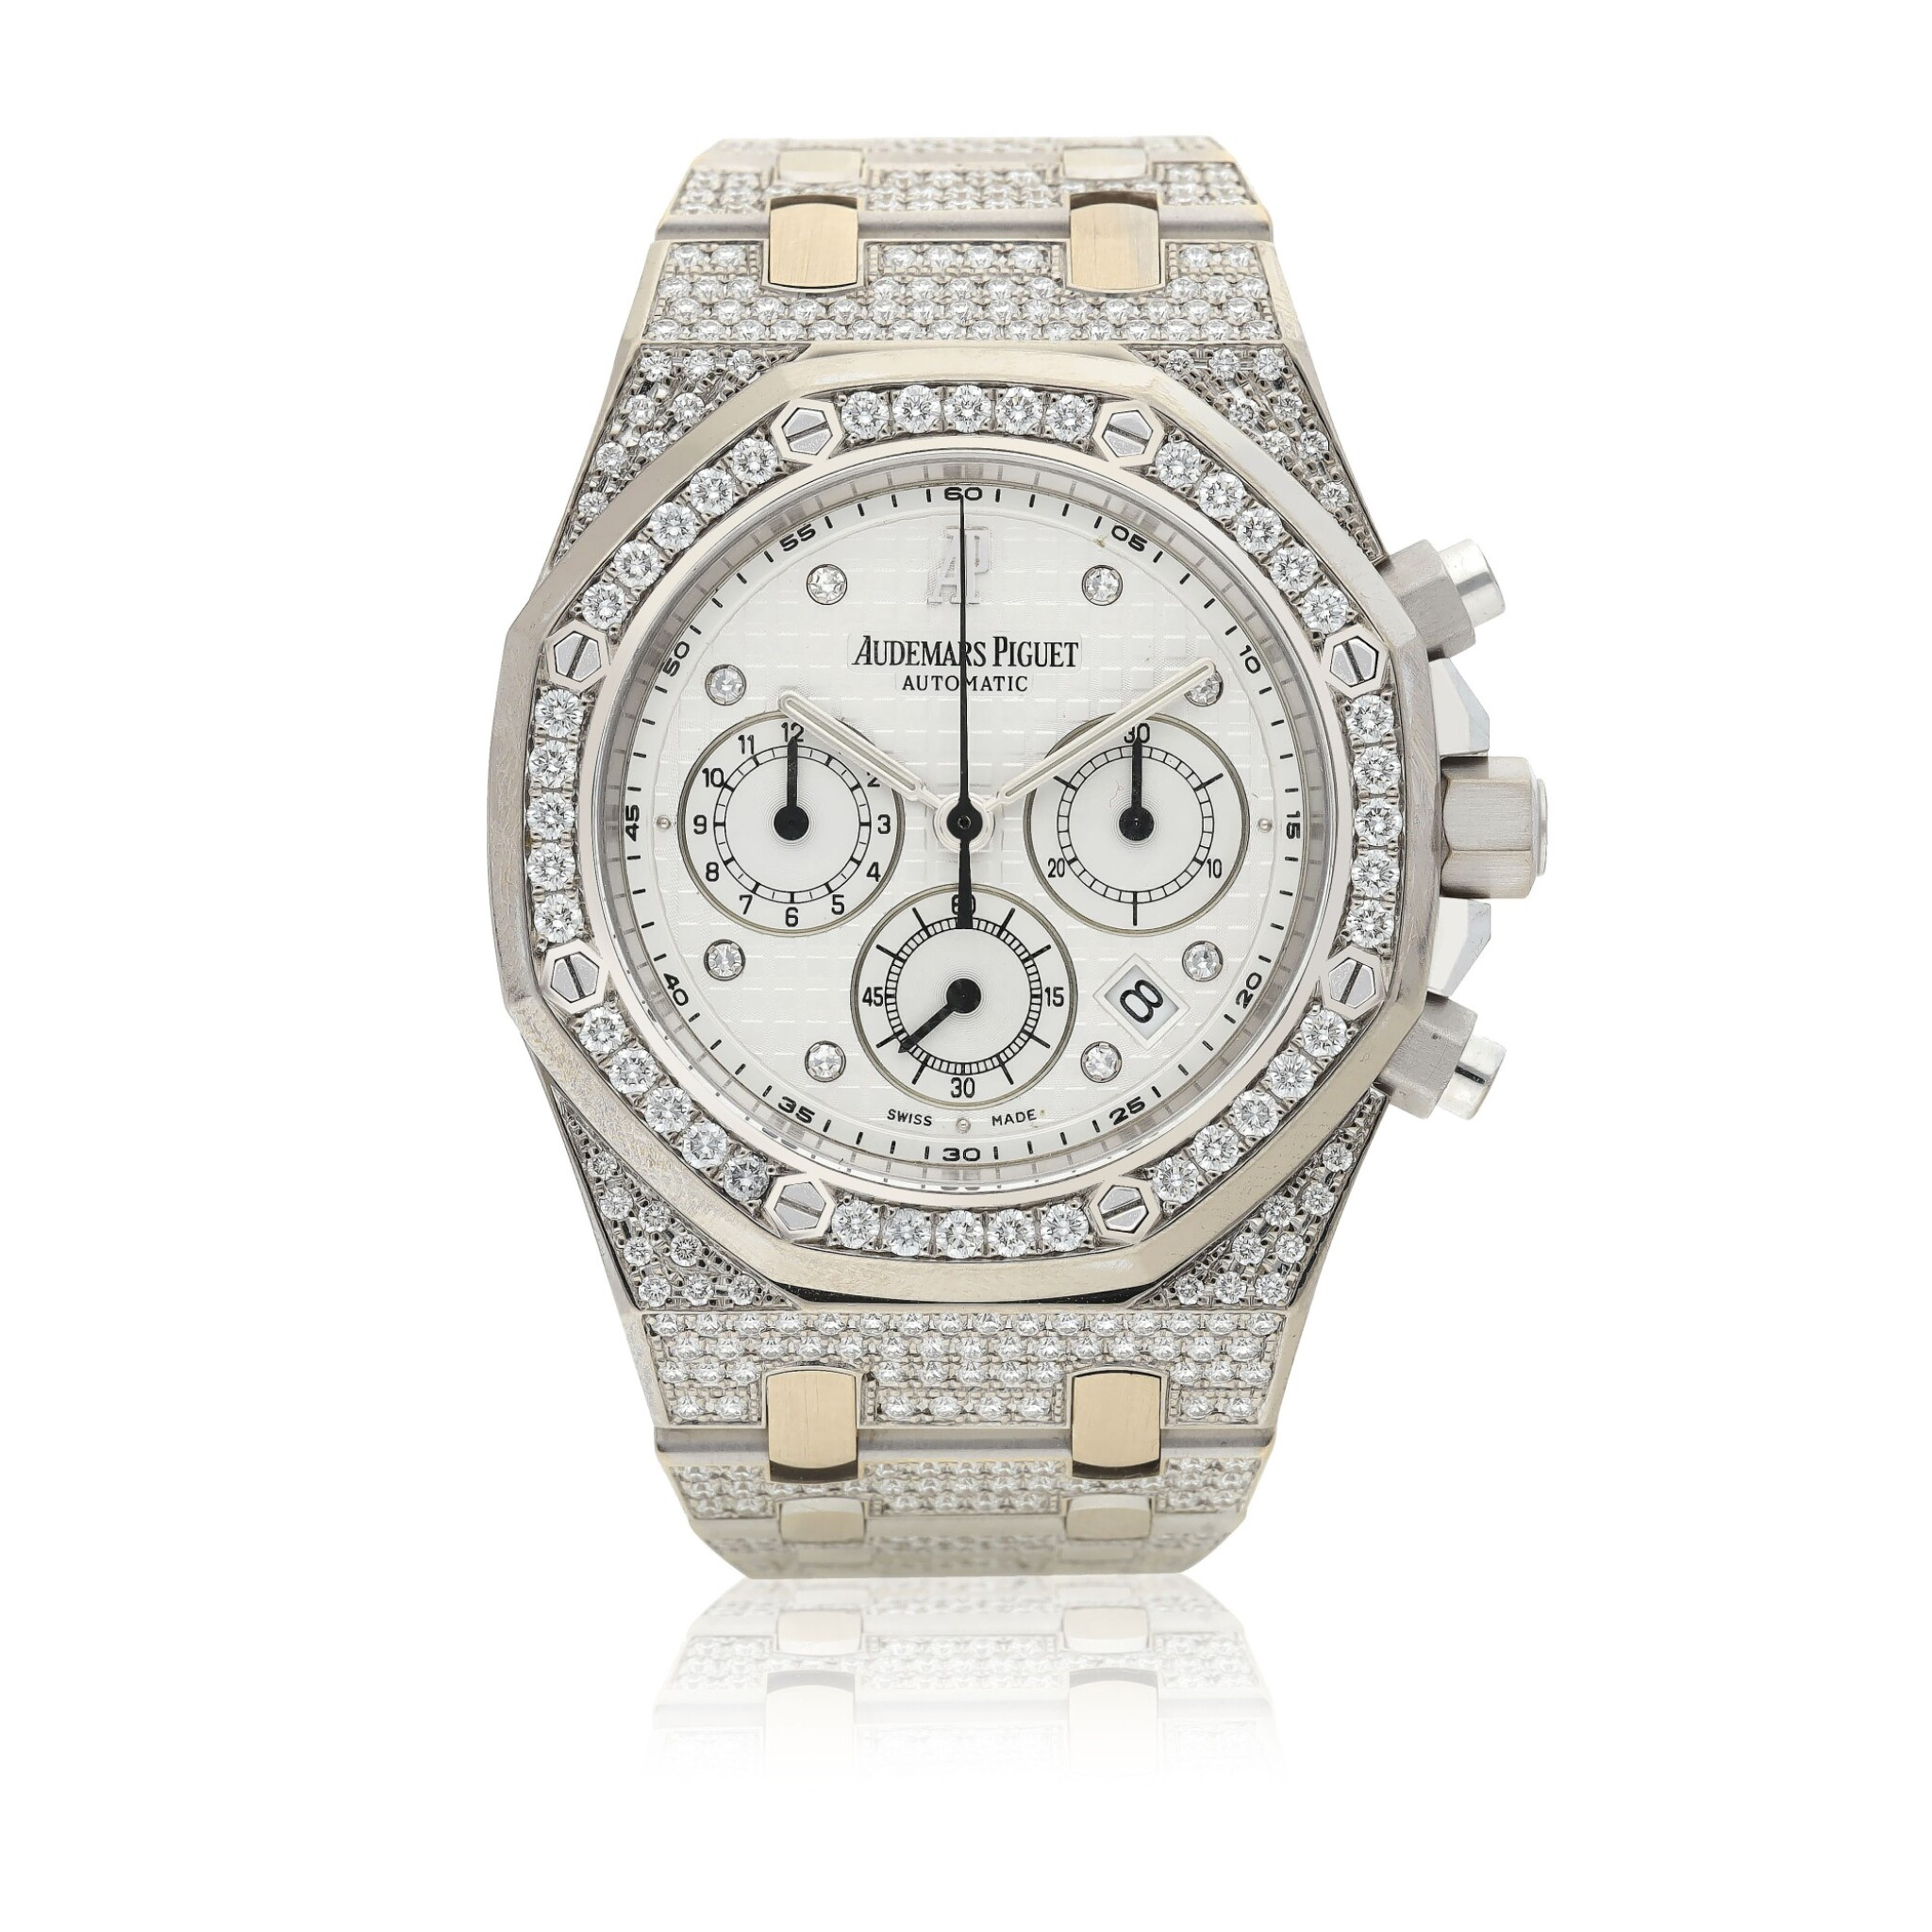 View full screen - View 1 of Lot 3. AUDEMARS PIGUET   REF 25967 ROYAL OAK, A WHITE GOLD AND DIAMOND-SET AUTOMATIC CHRONOGRAPH WRISTWATCH WITH DATE AND BRACELET CIRCA 2010.